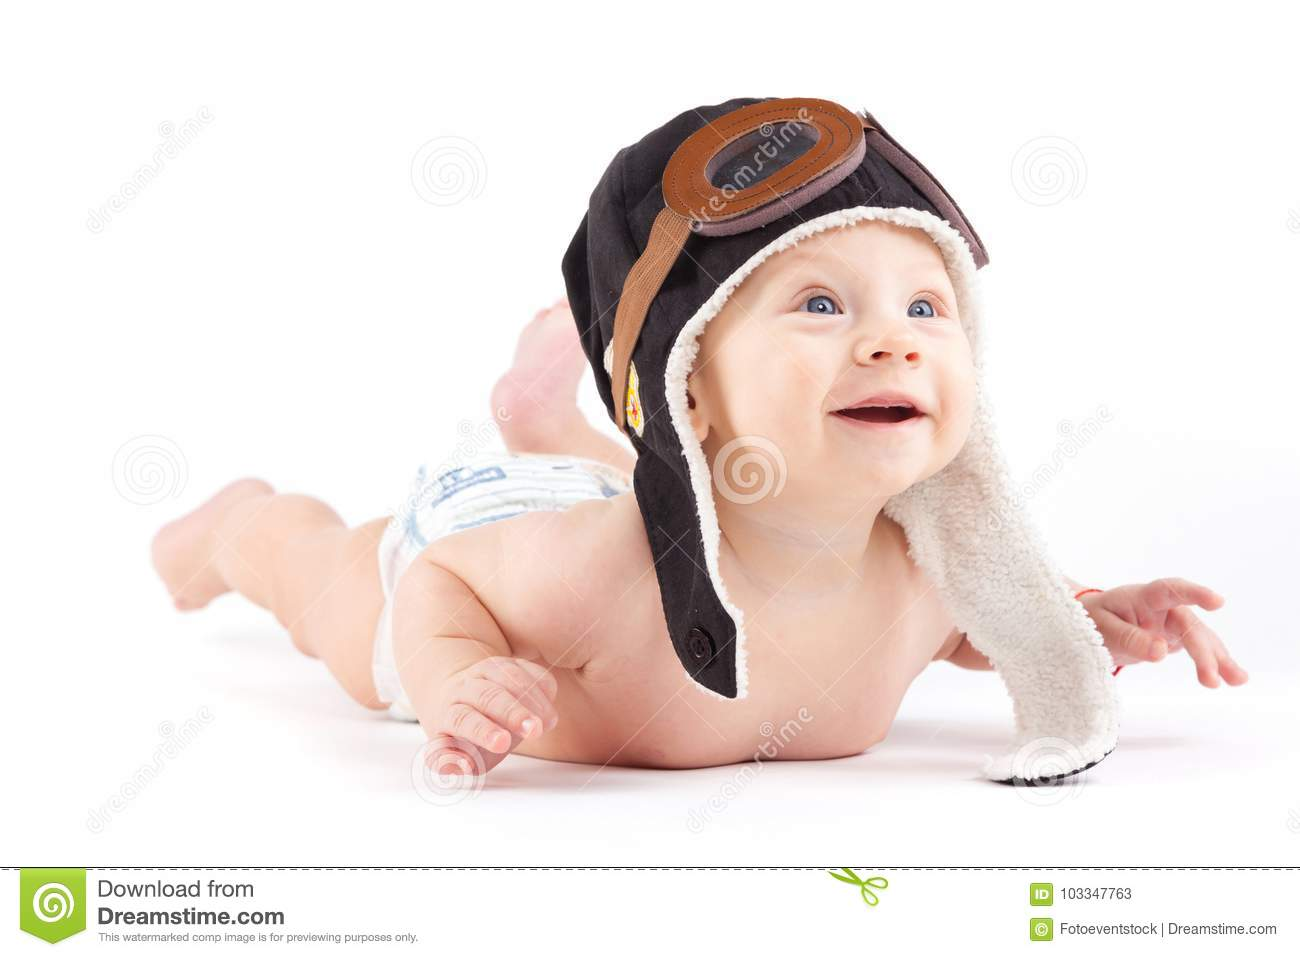 Cute Happy Baby Boy In Diaper And Pilot Hat Stock Image - Image of ... 25d9a97cdee